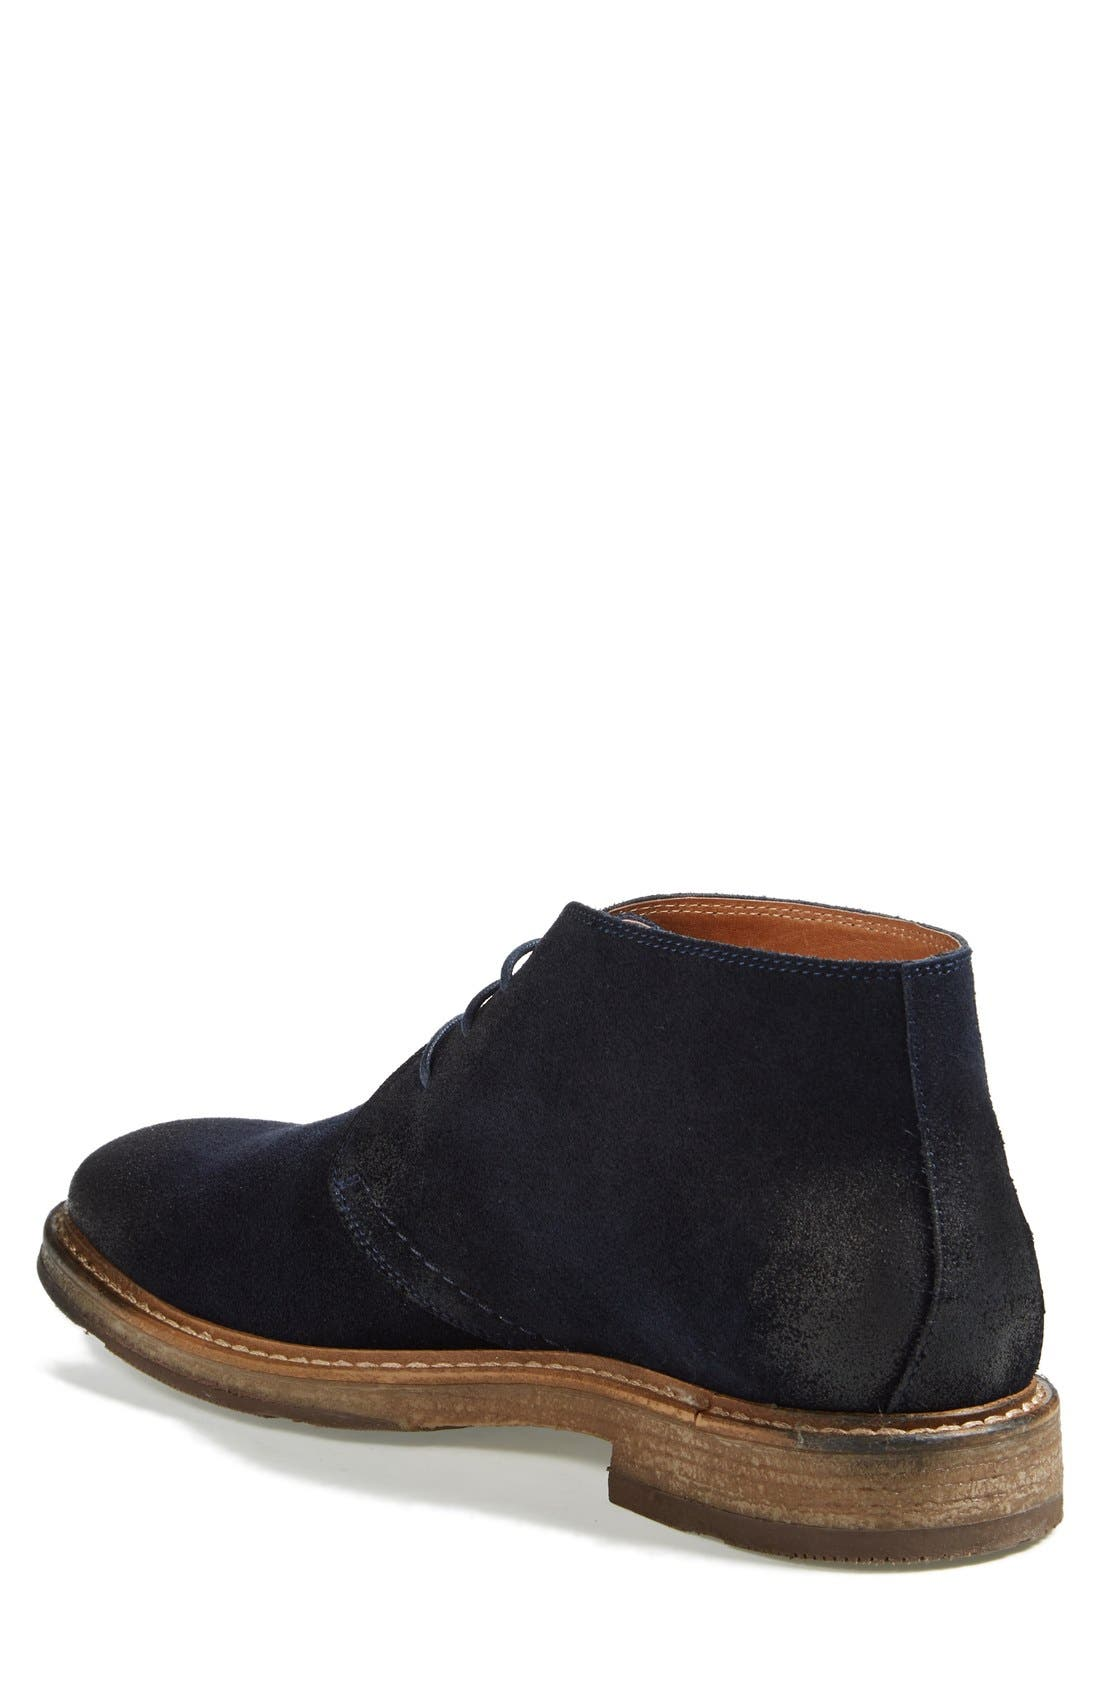 'Canyon' Chukka Boot,                             Alternate thumbnail 17, color,